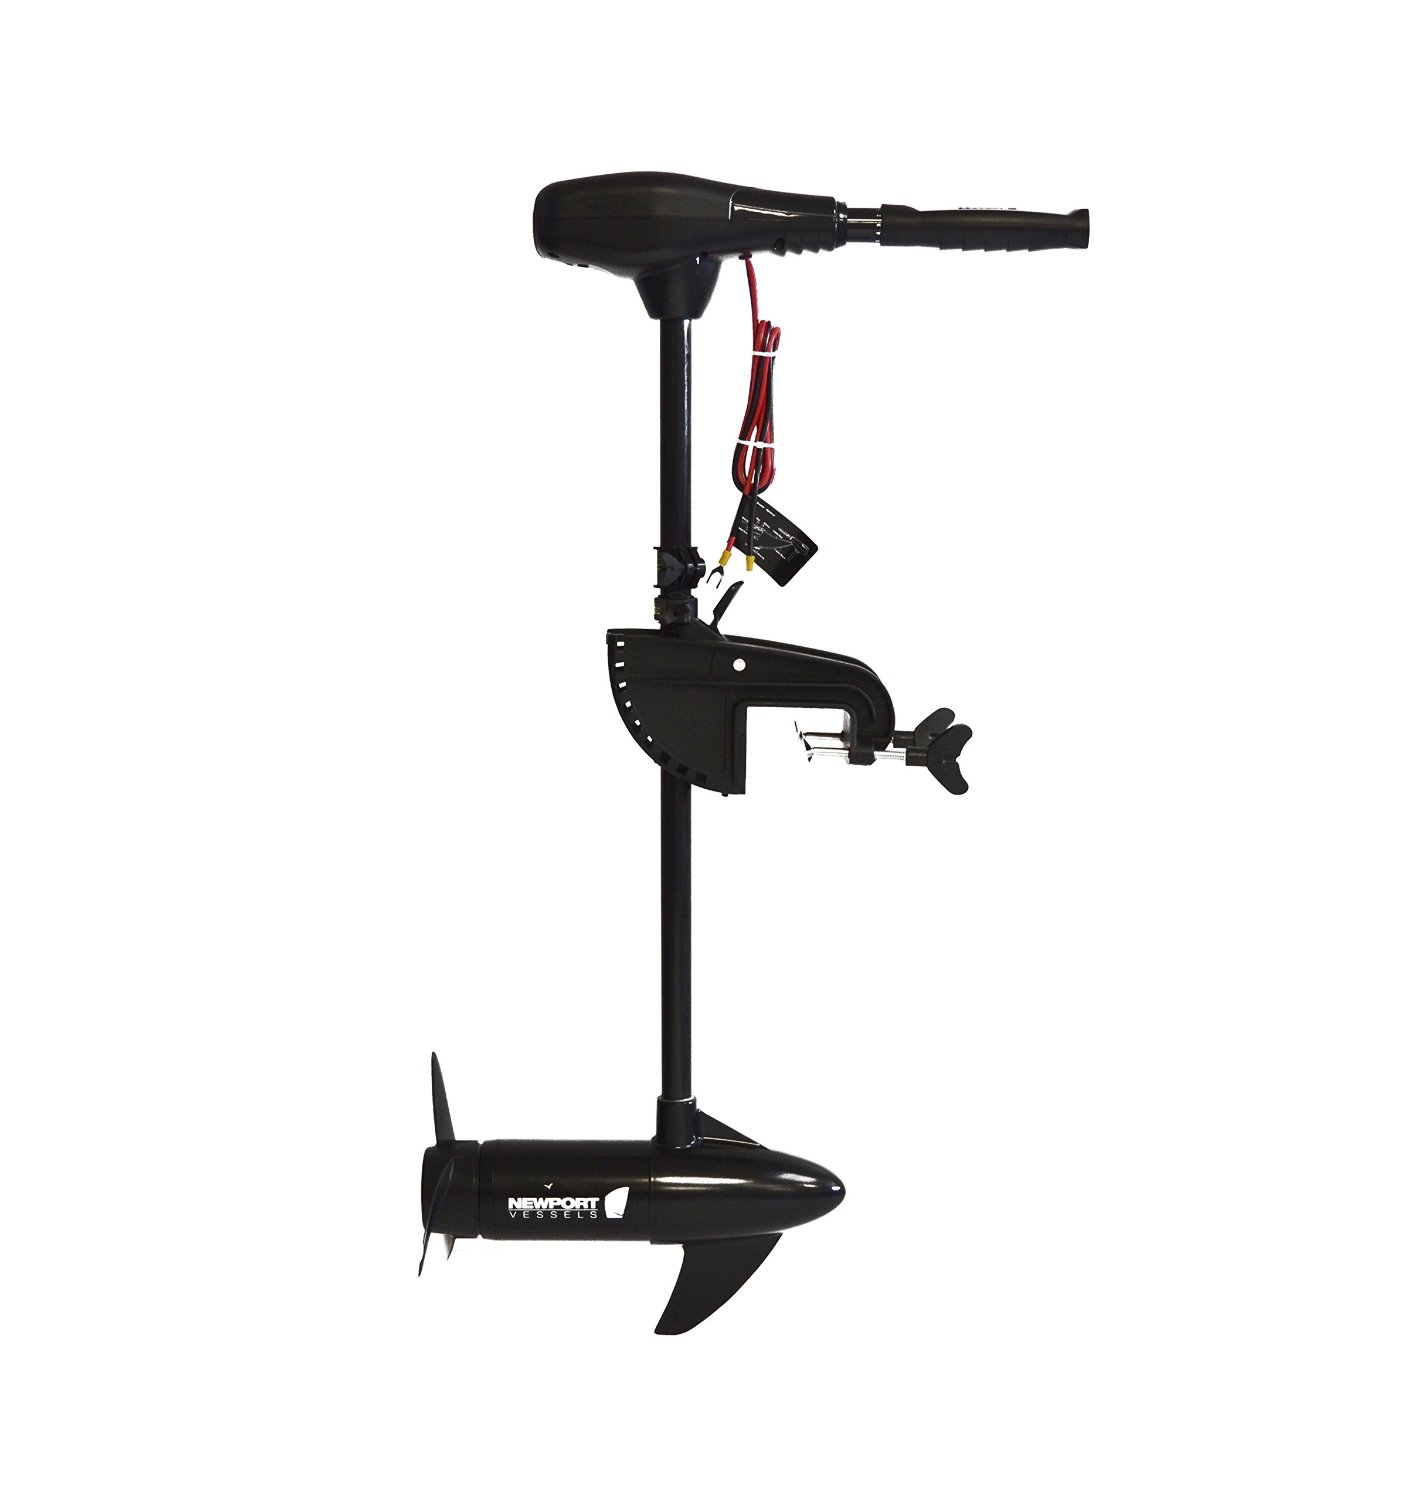 Newport Vessels 55 Pound Thrust 8 Speed - 2nd Best Trolling Motor